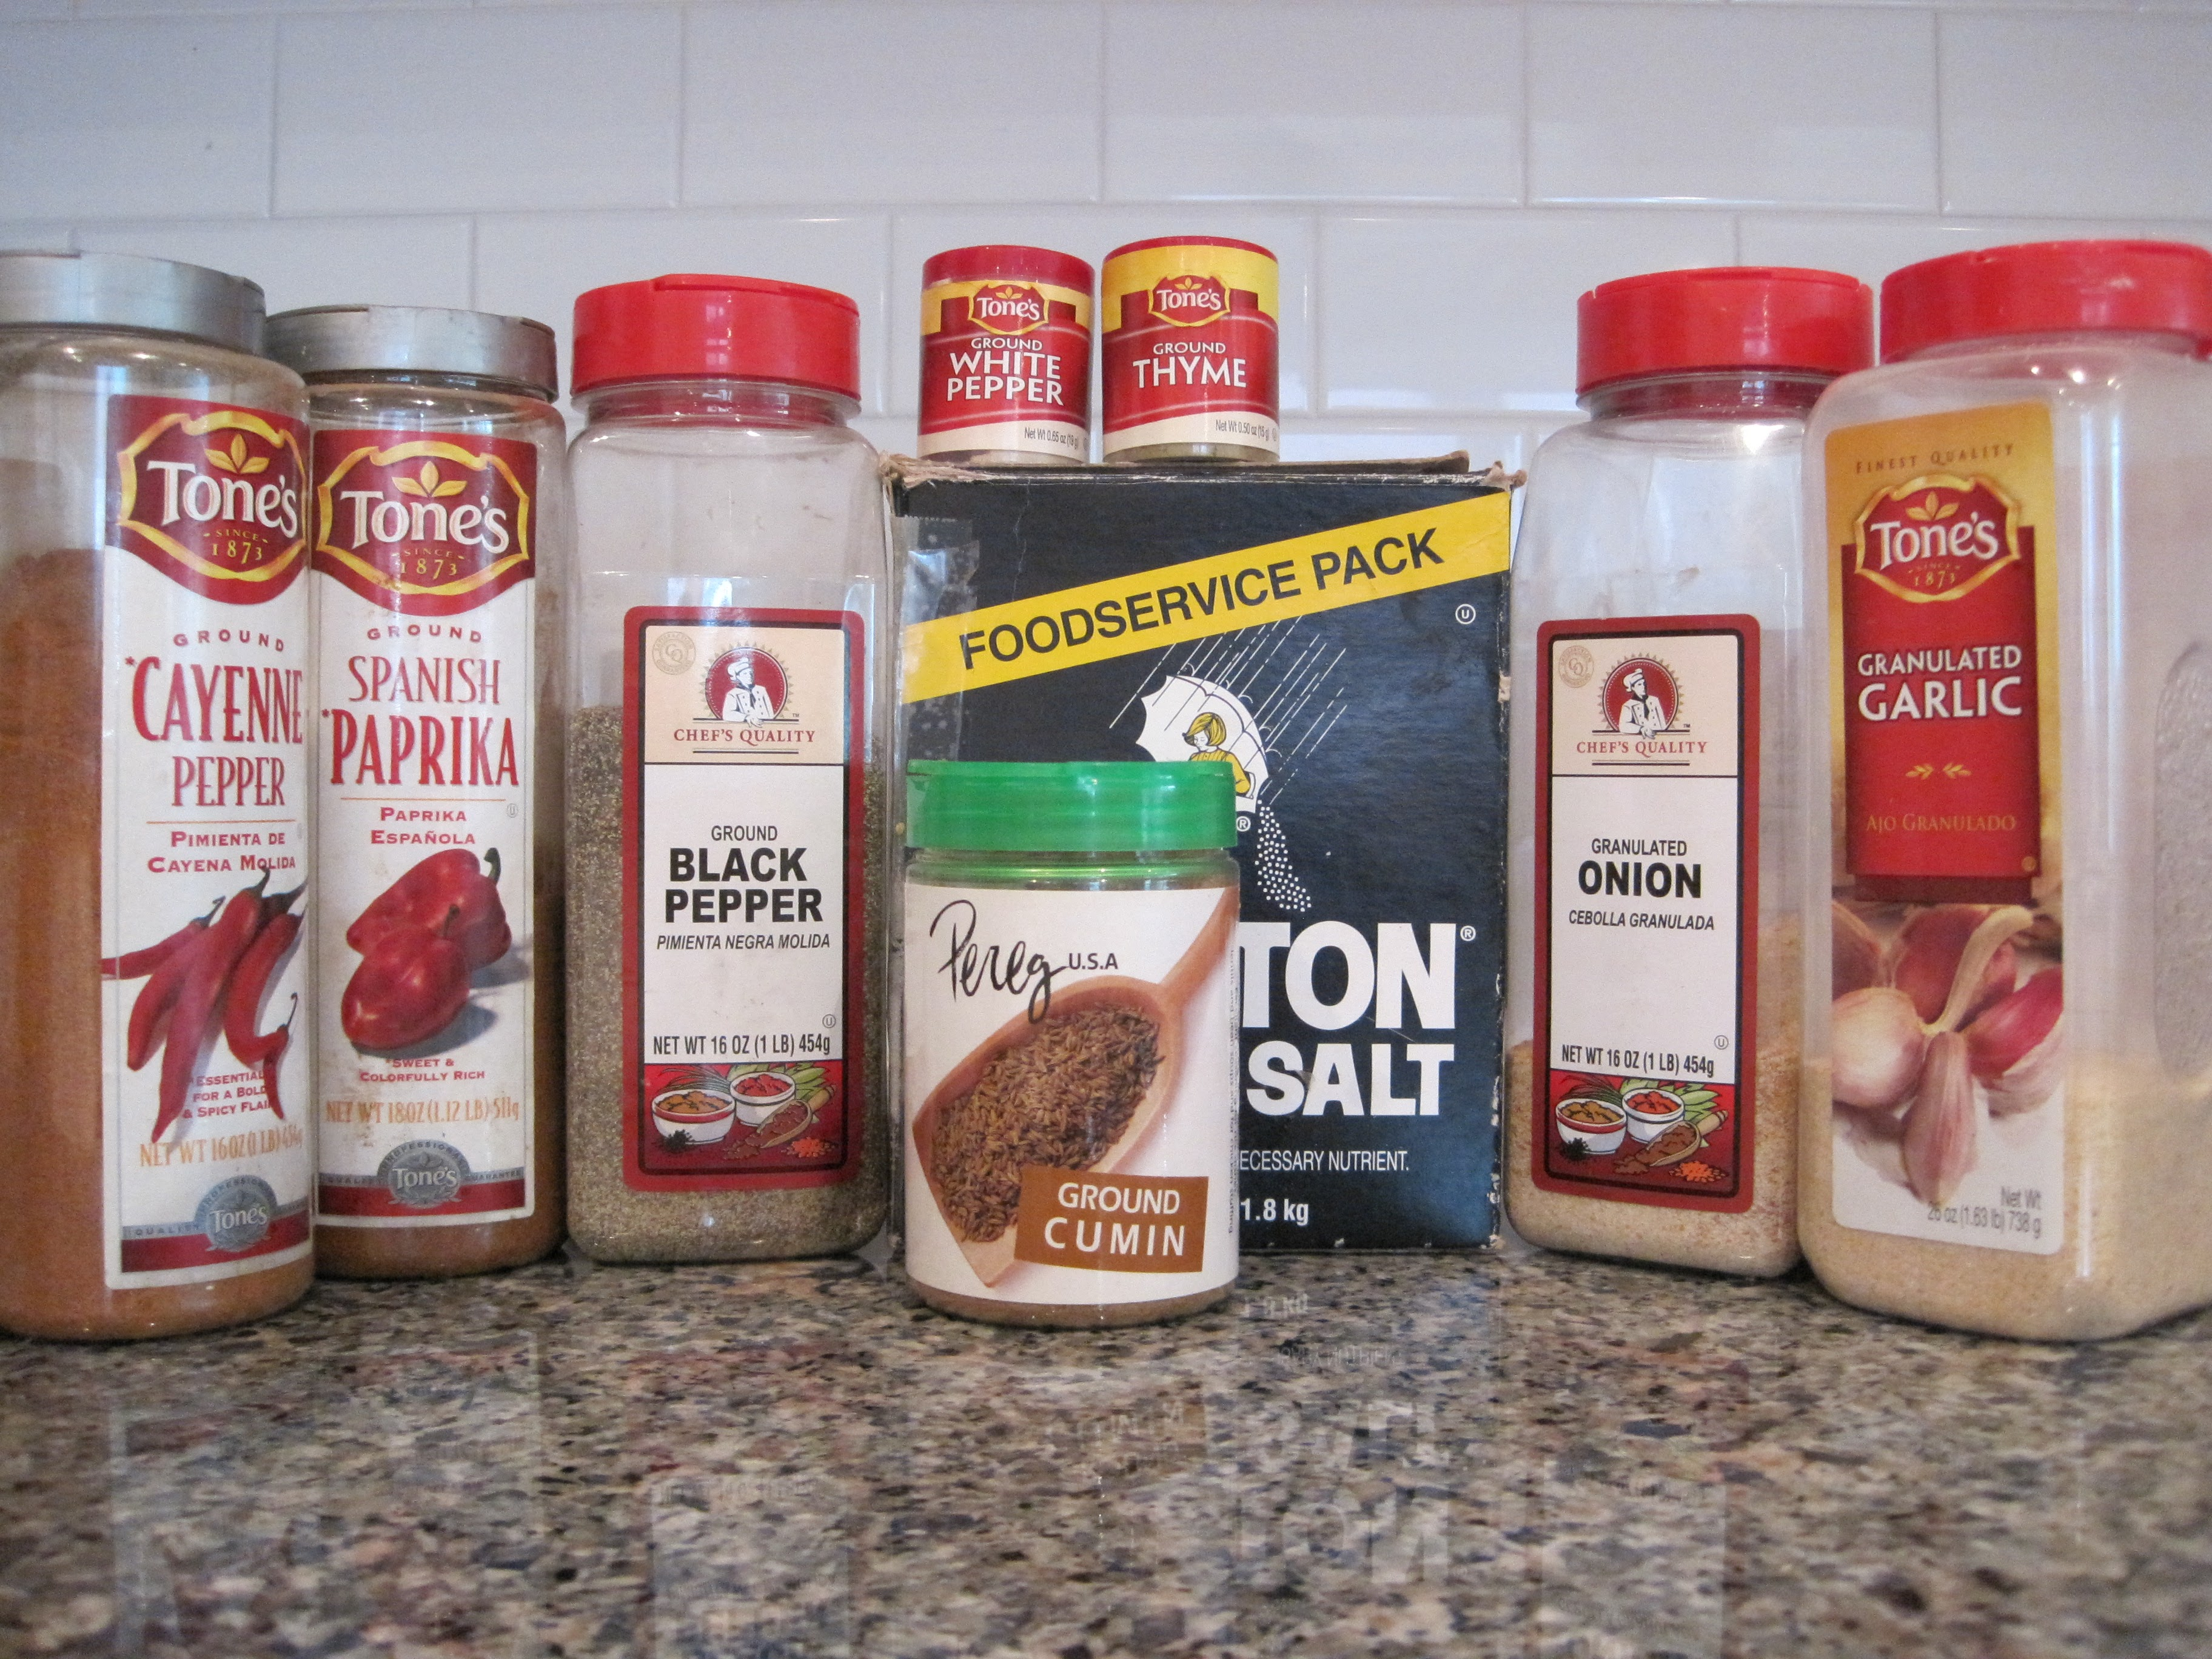 All the ingredients. Note the large spice bottles...there's a reason for that!!